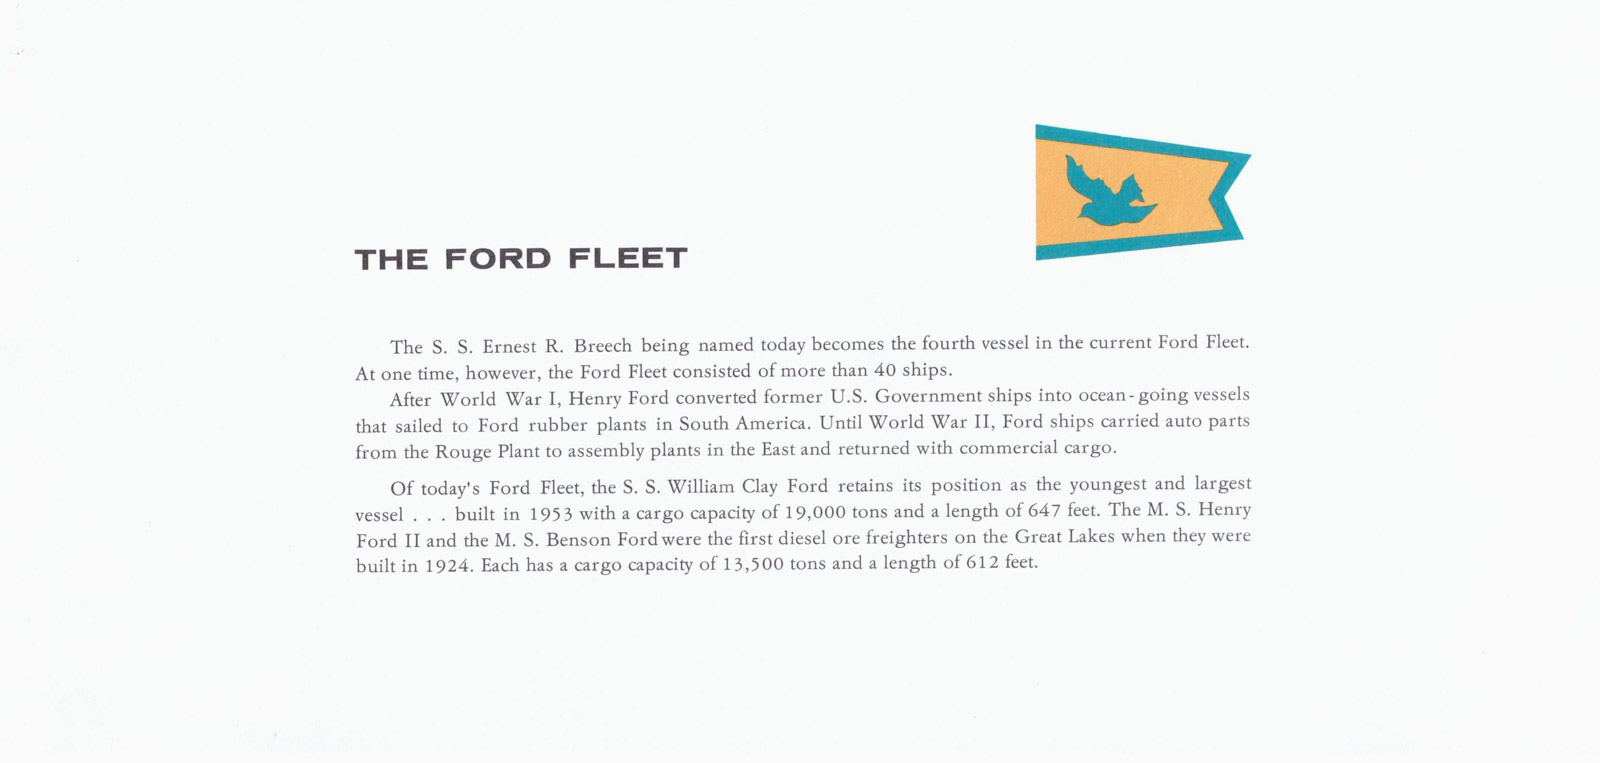 The Ford Fleet